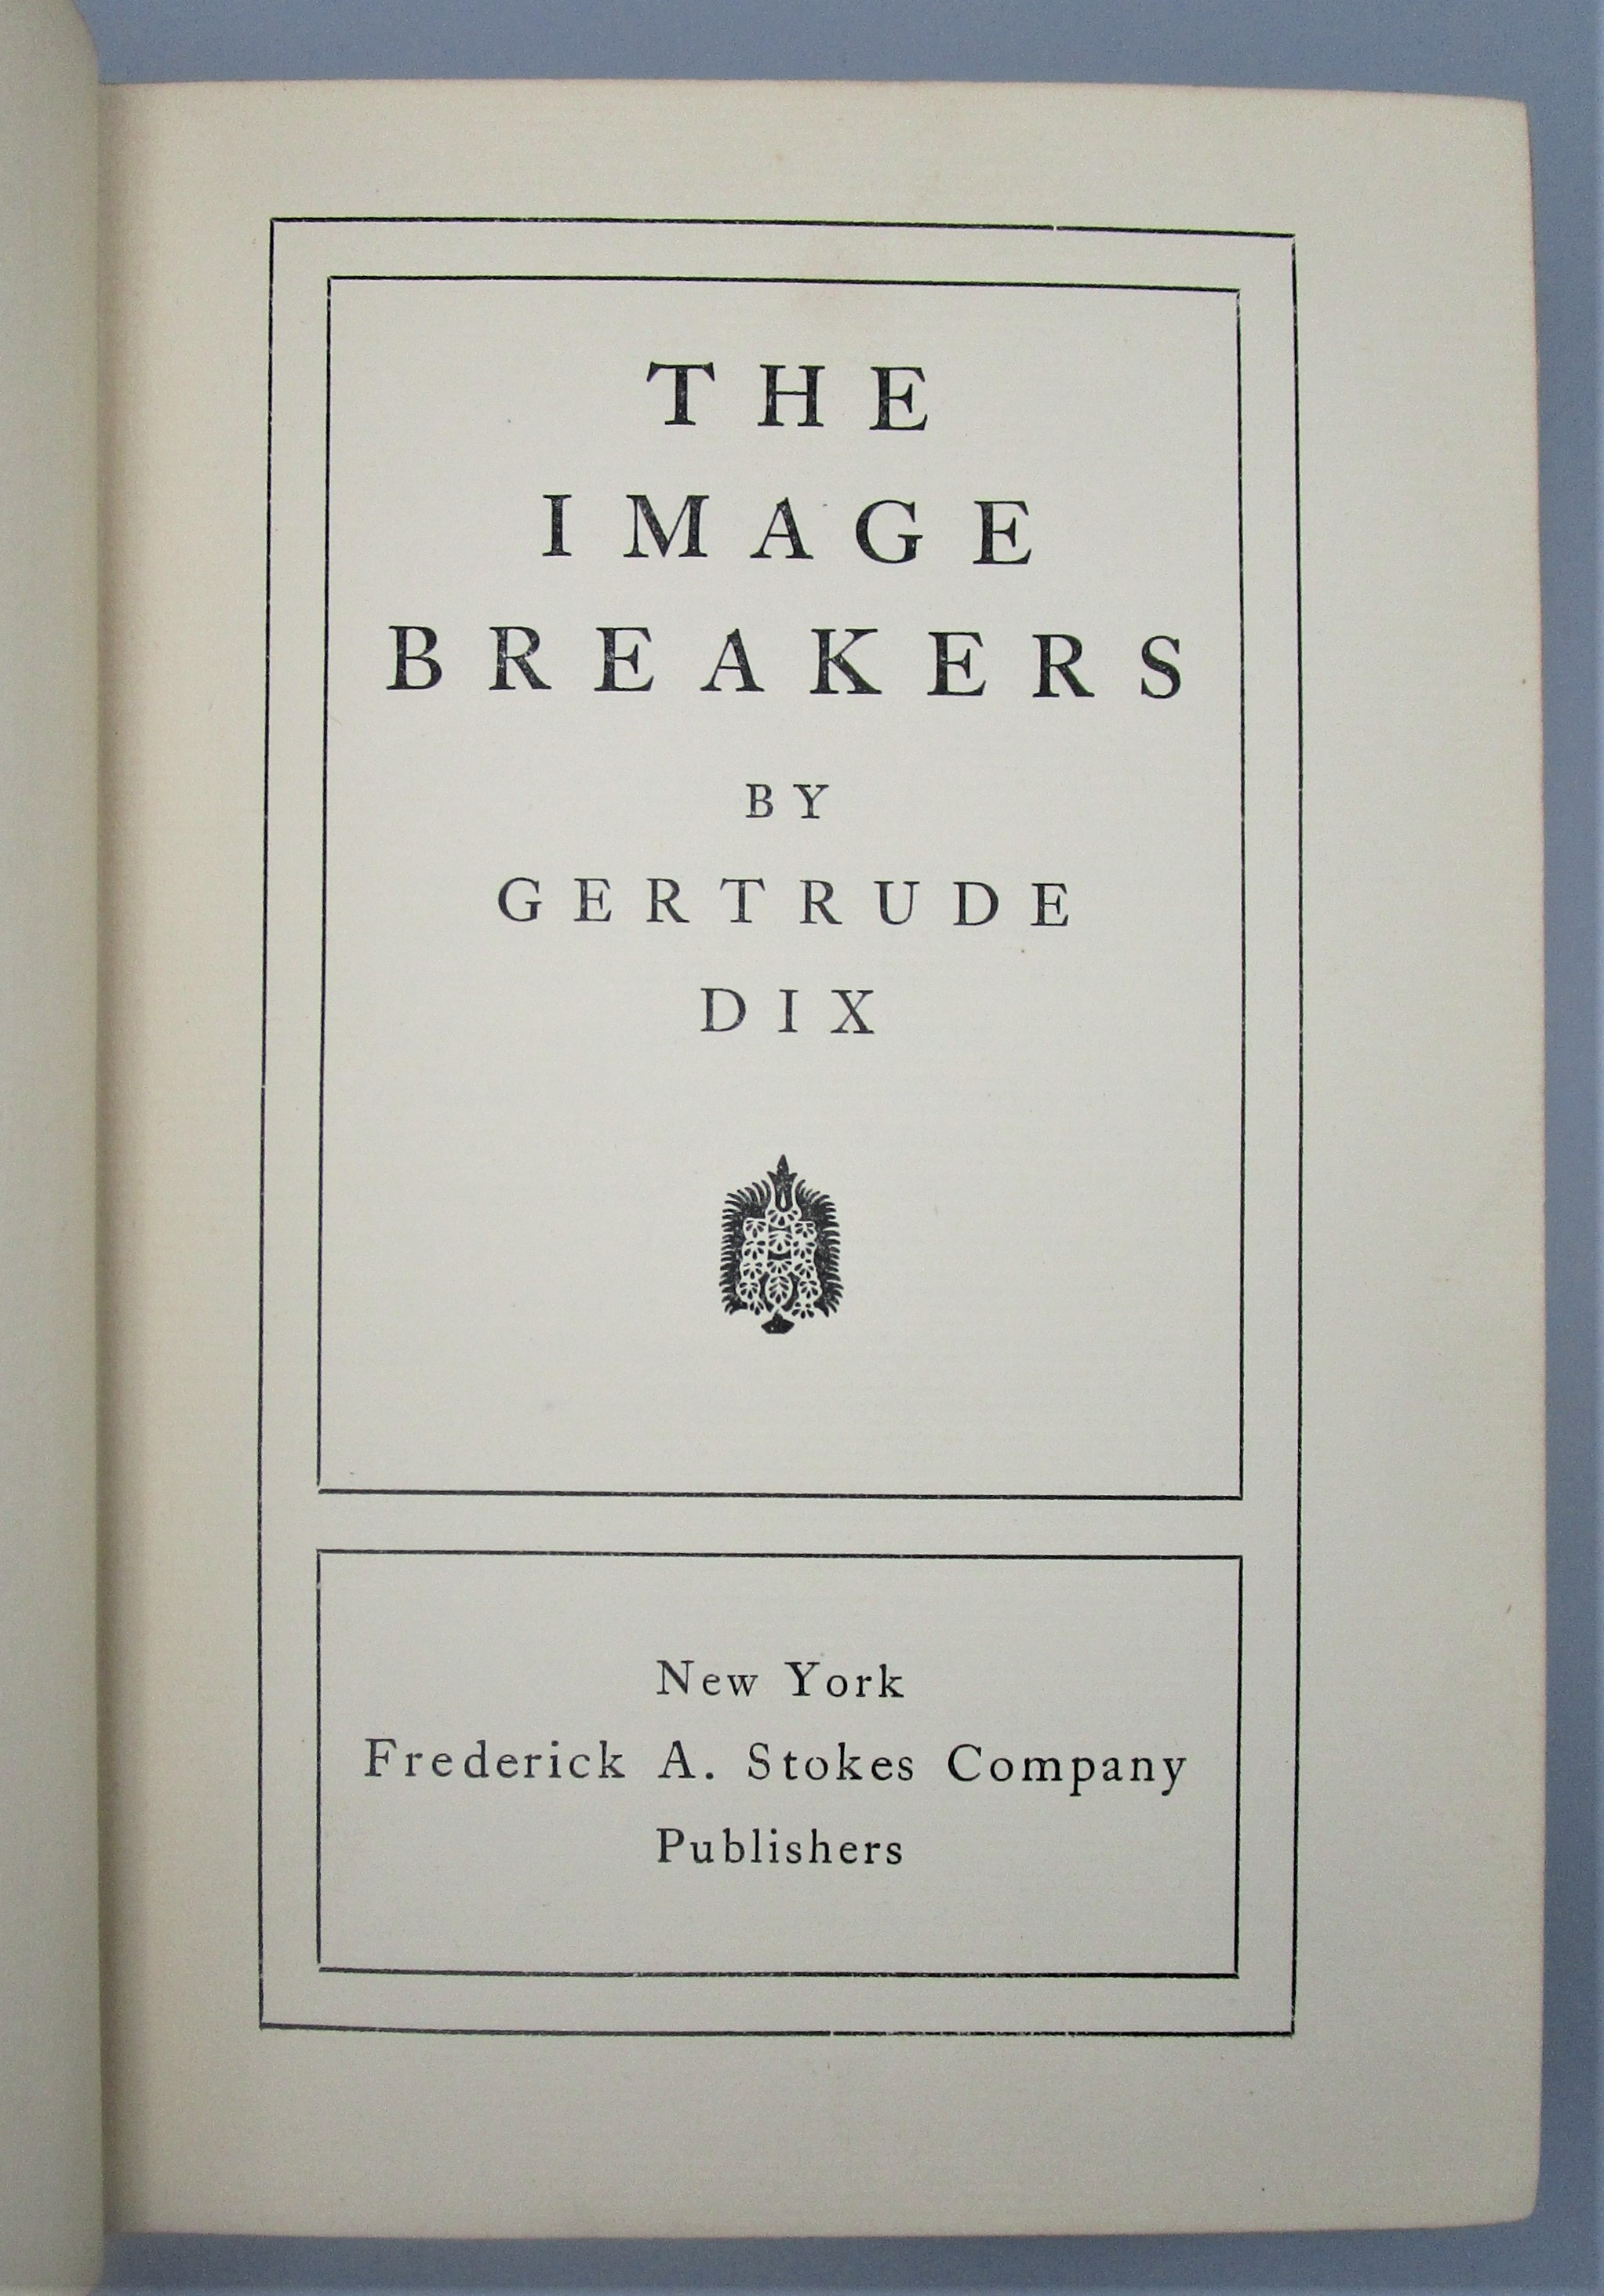 THE IMAGE BREAKERS, by Gertrude Dix - 1900